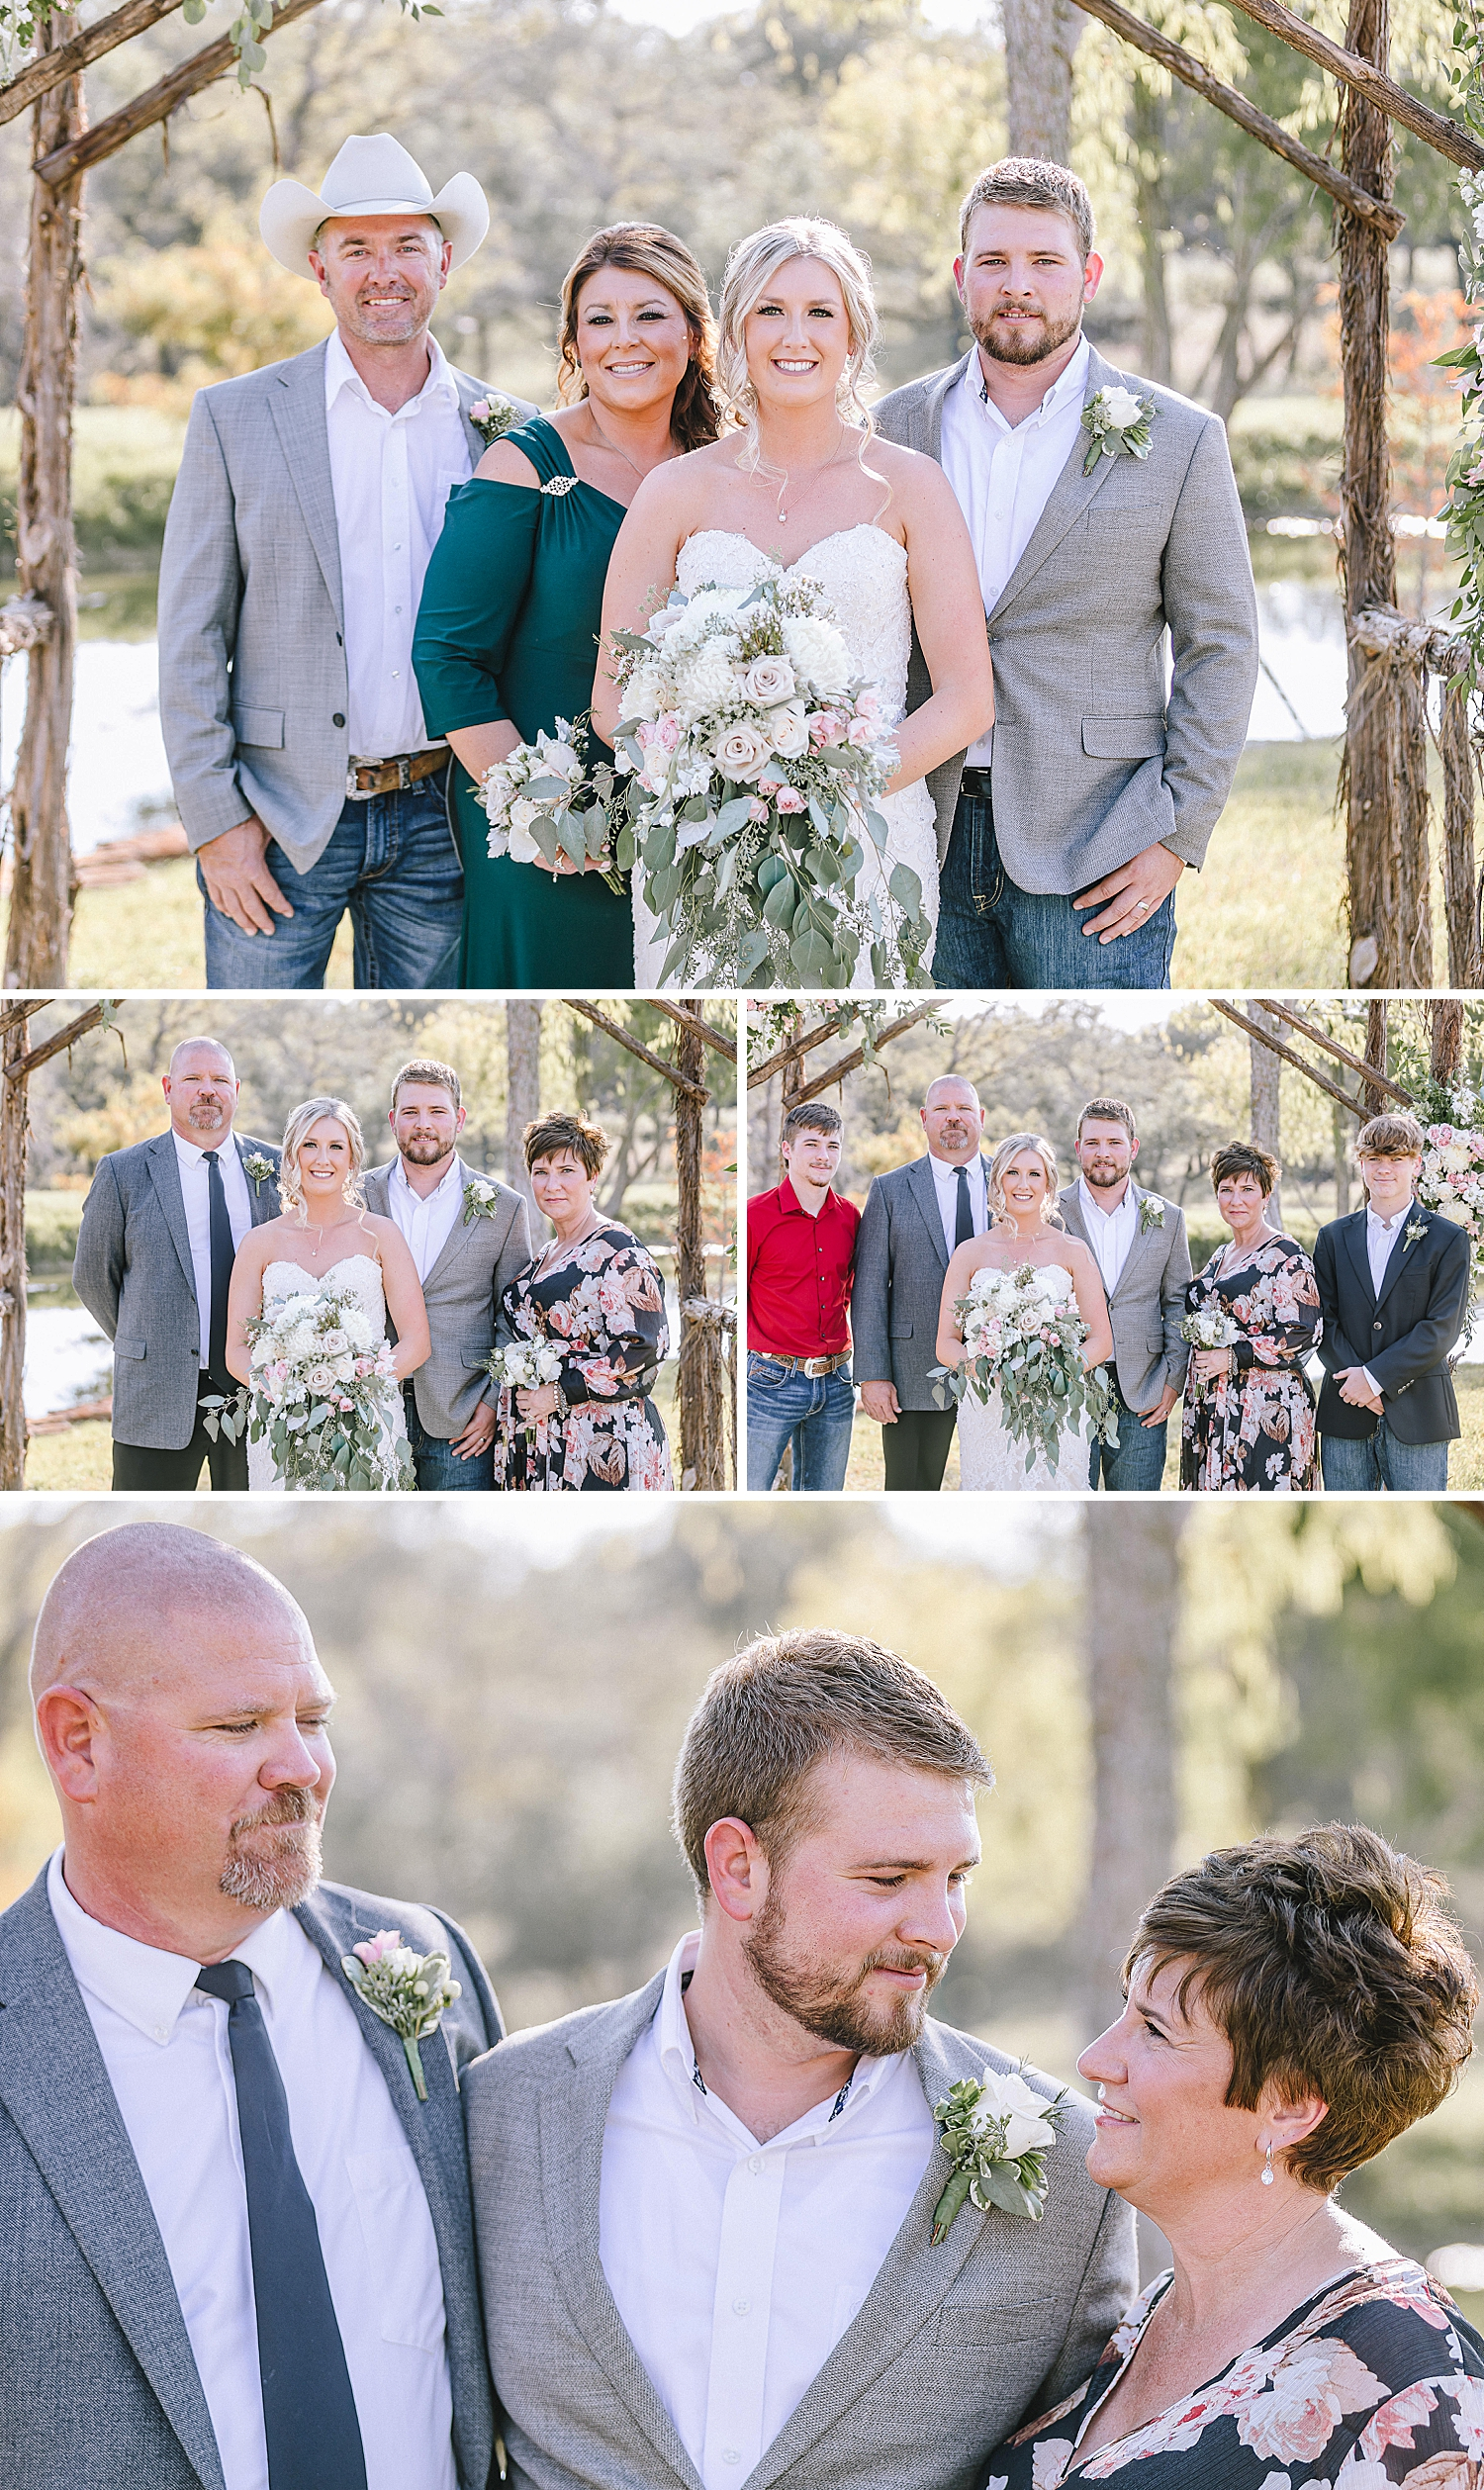 Rackler-Ranch-LaVernia-Texas-Wedding-Carly-Barton-Photography_0051.jpg